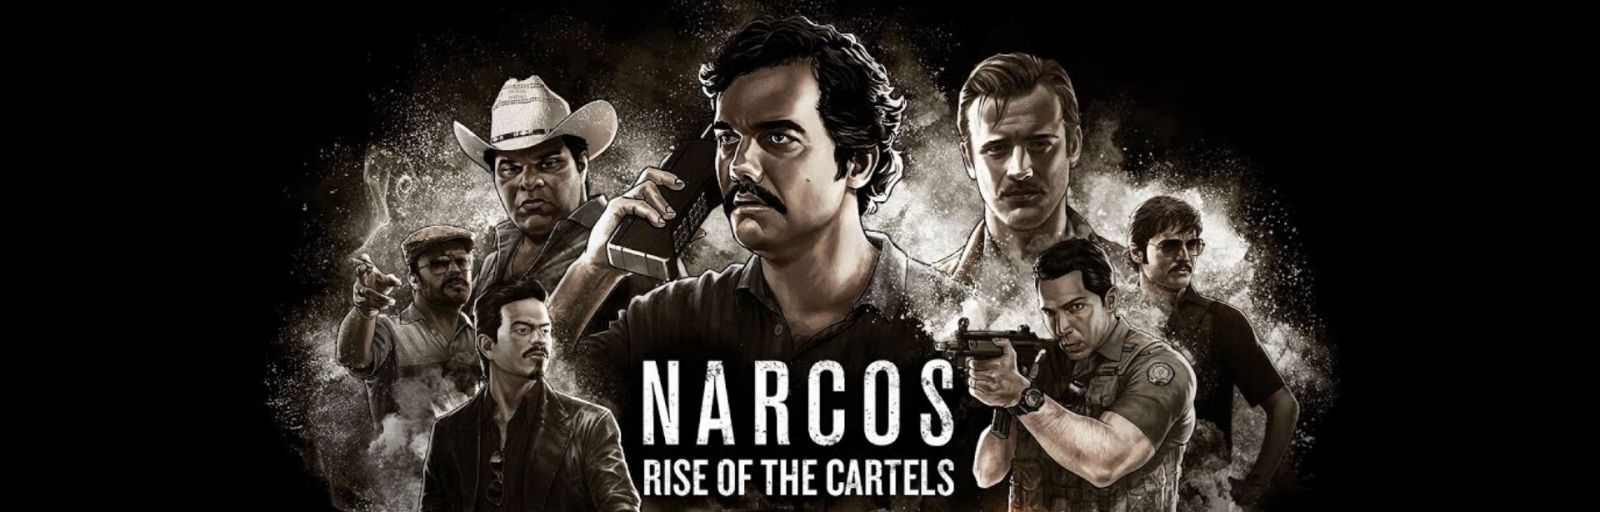 Narcos: Rise of the Cartels game trailer